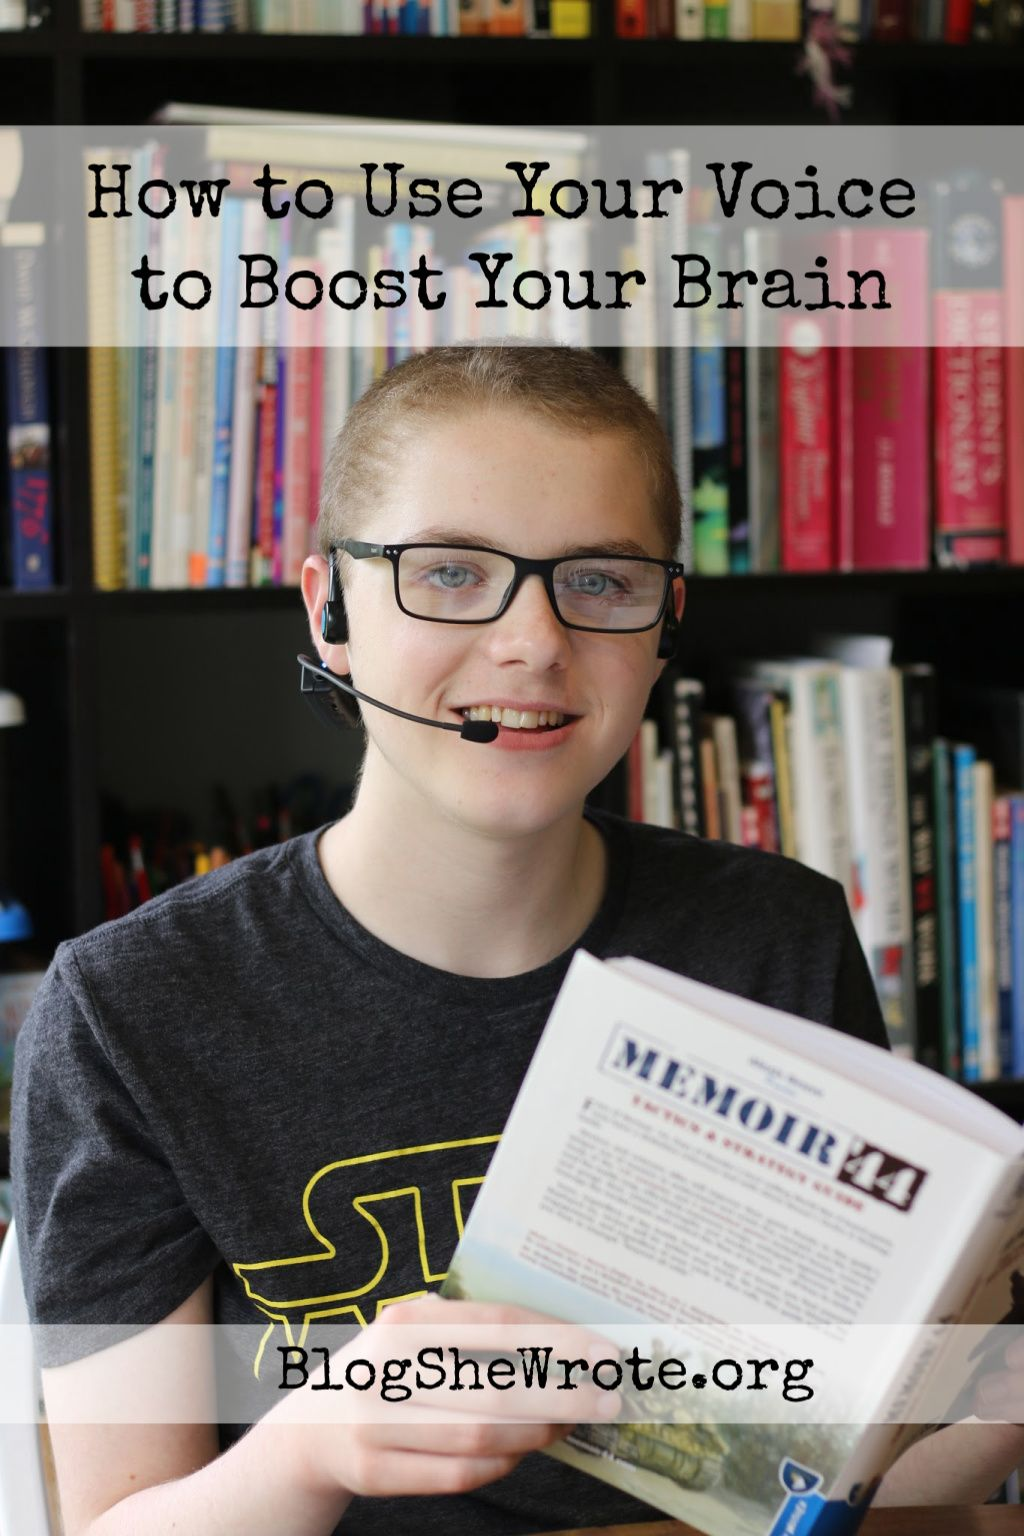 How To Use Your Voice To Boost Your Brain